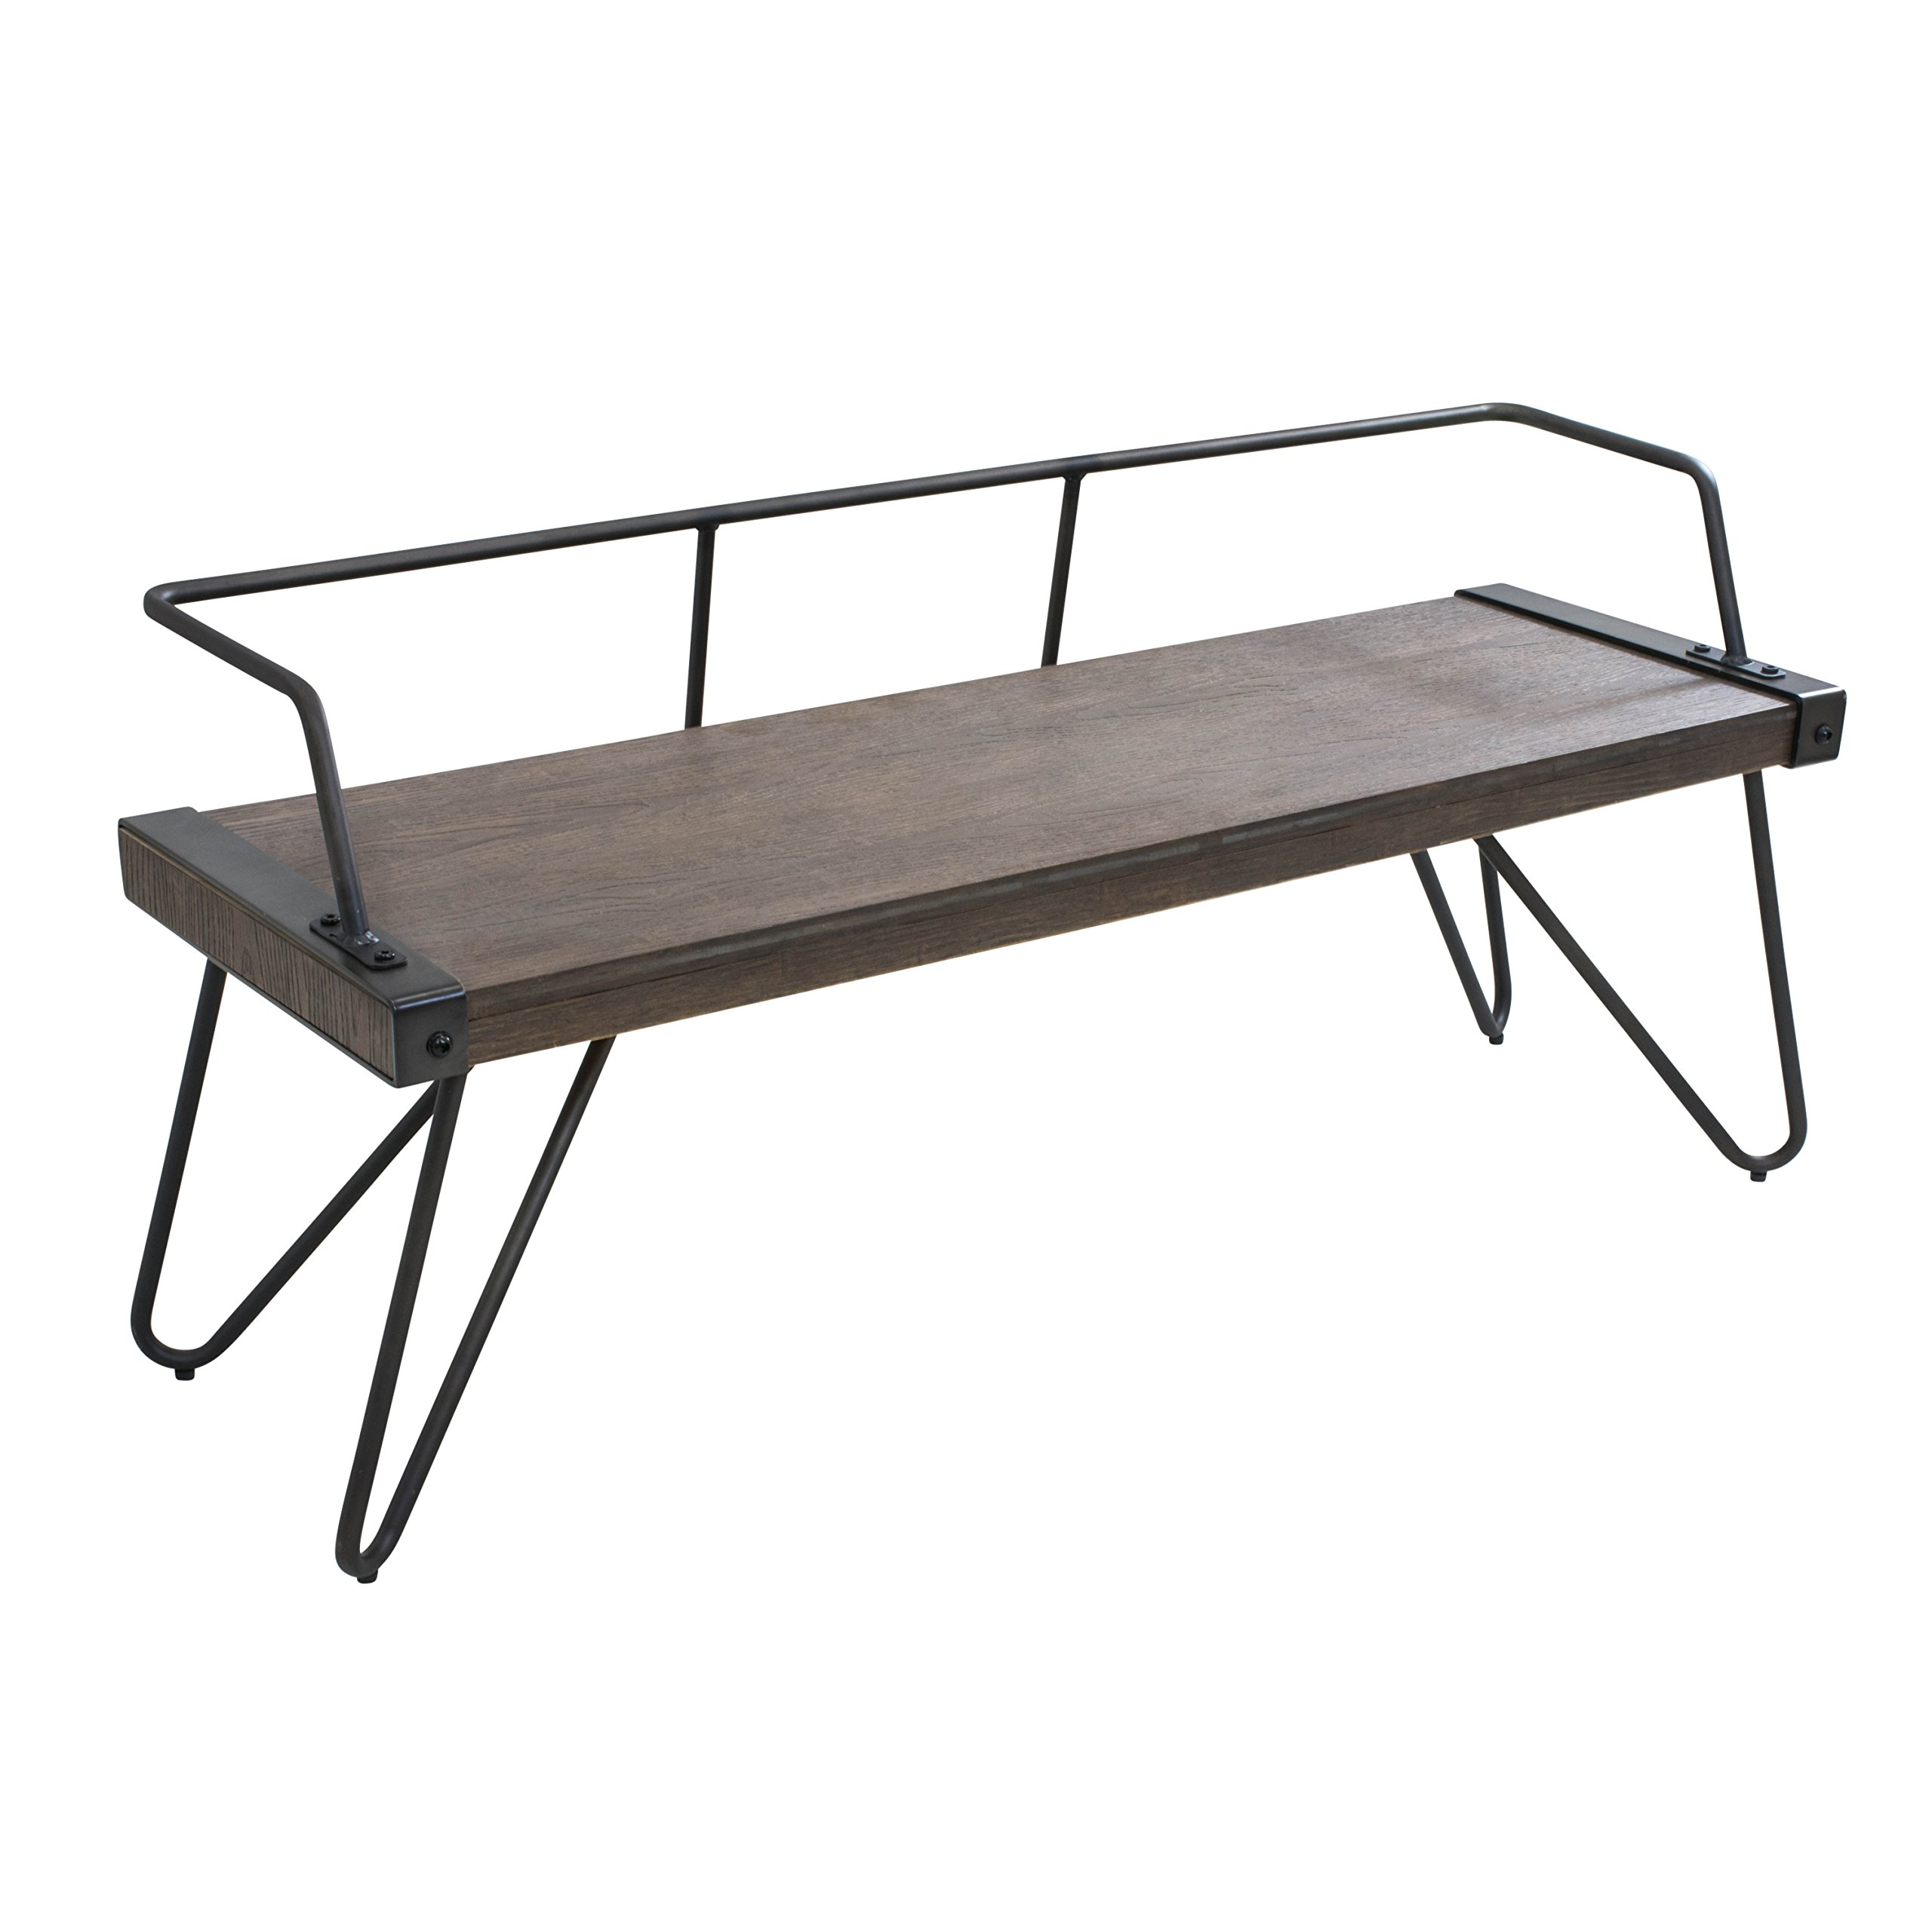 WOYBR DC-STFBEN WL+AN Wood, Metal Stefani Bench by WOYBR (Image #1)